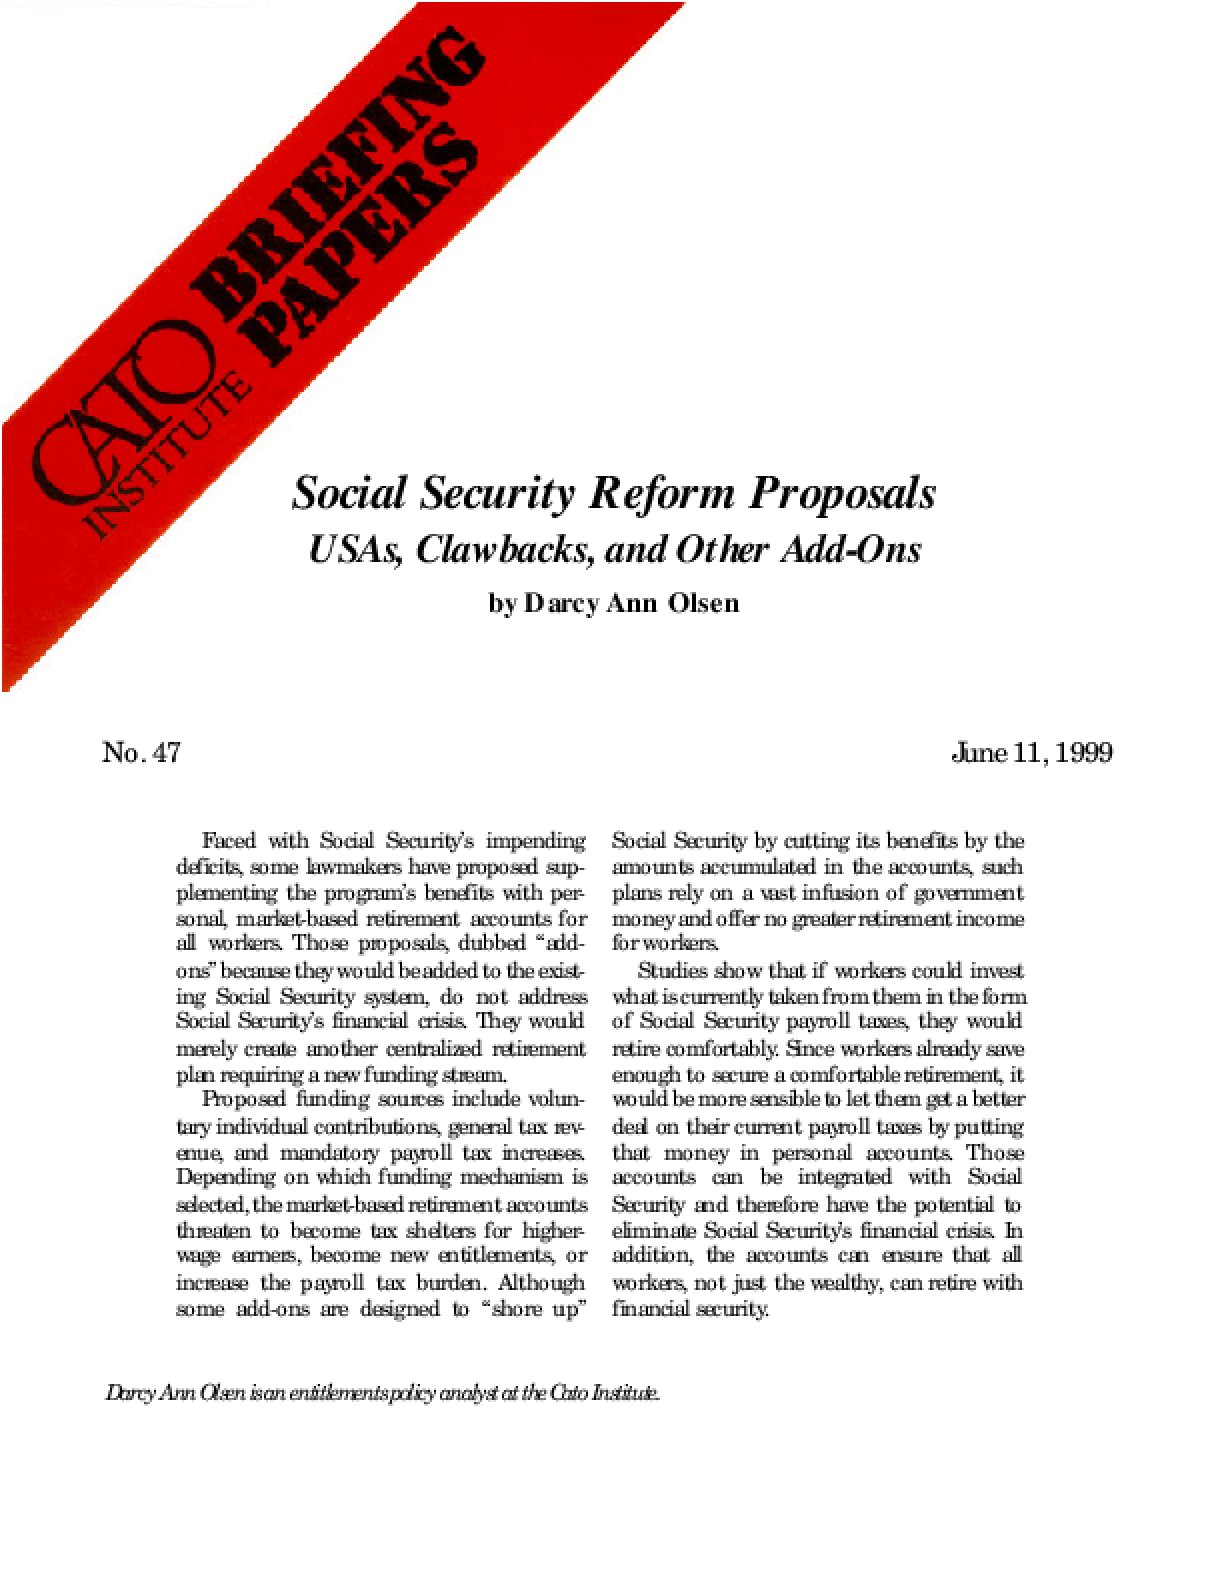 Social Security Reform Proposals: USAs, Clawbacks, and Other Add-Ons